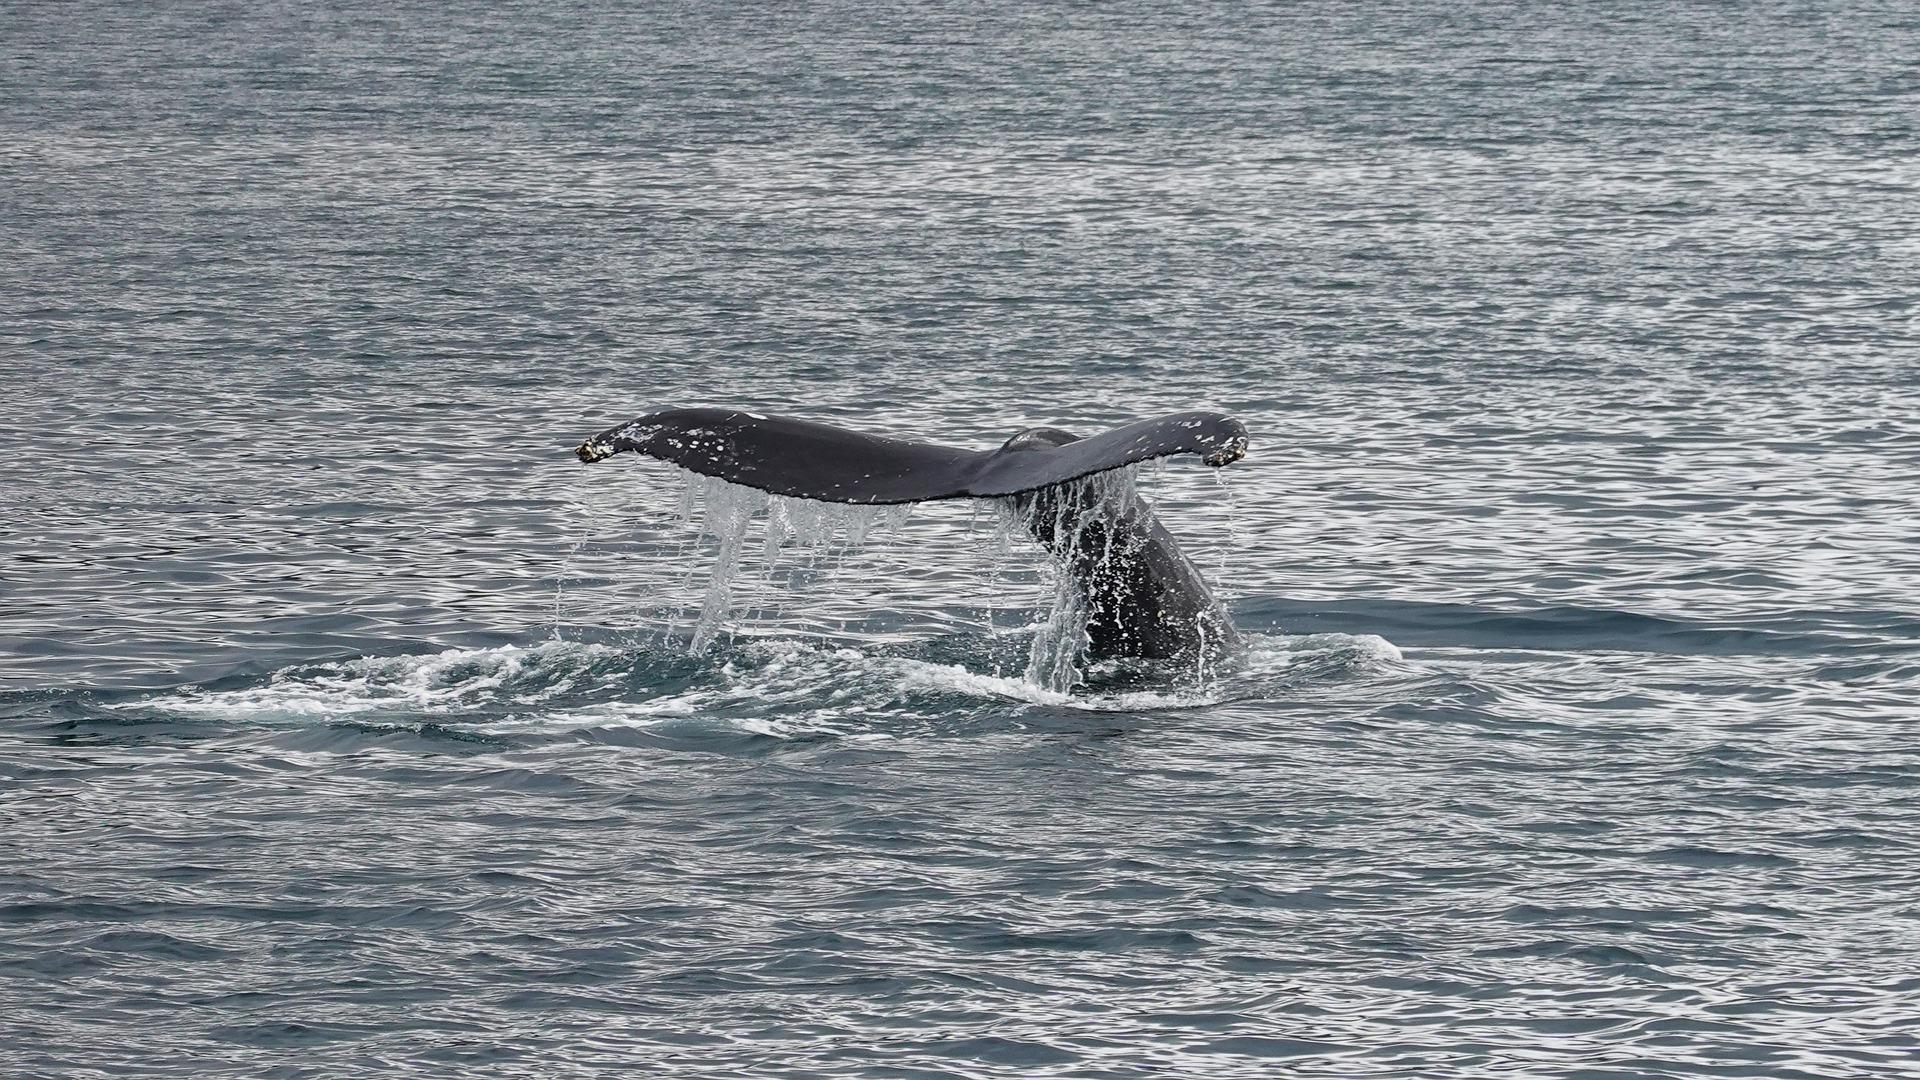 humpback whale in River Thames